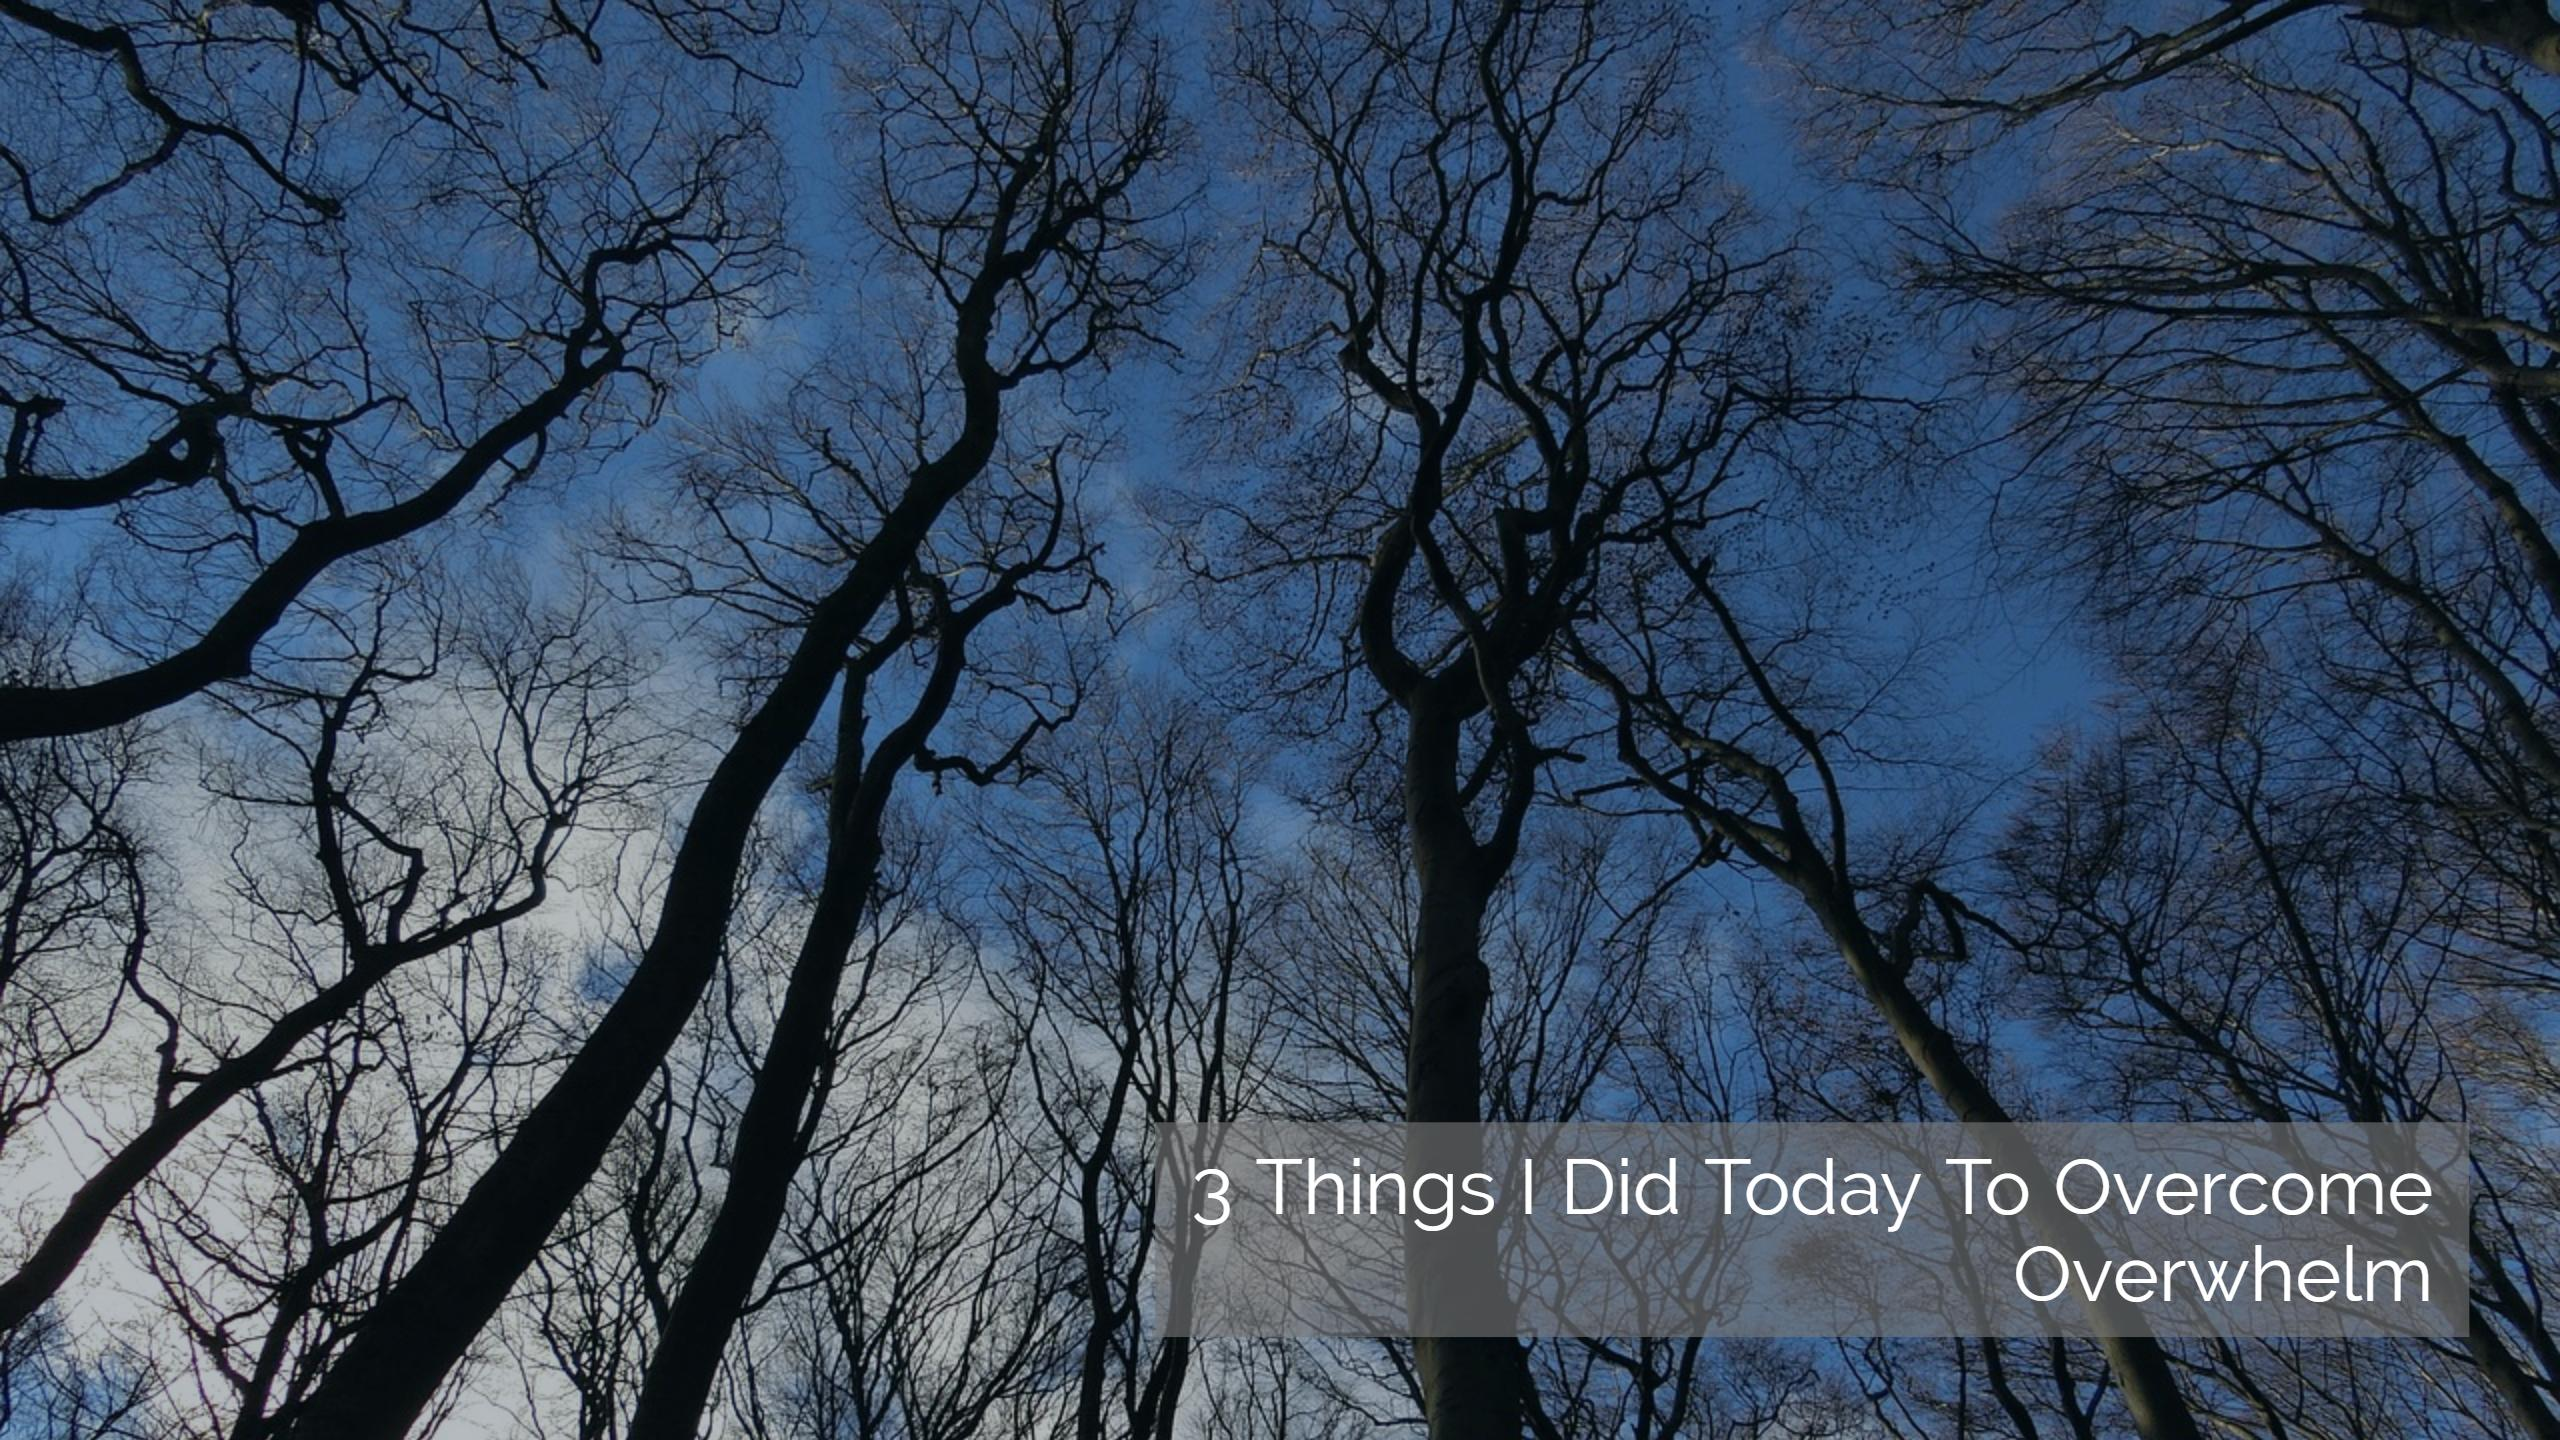 3 Things I Did Today To Overcome Overwhelm